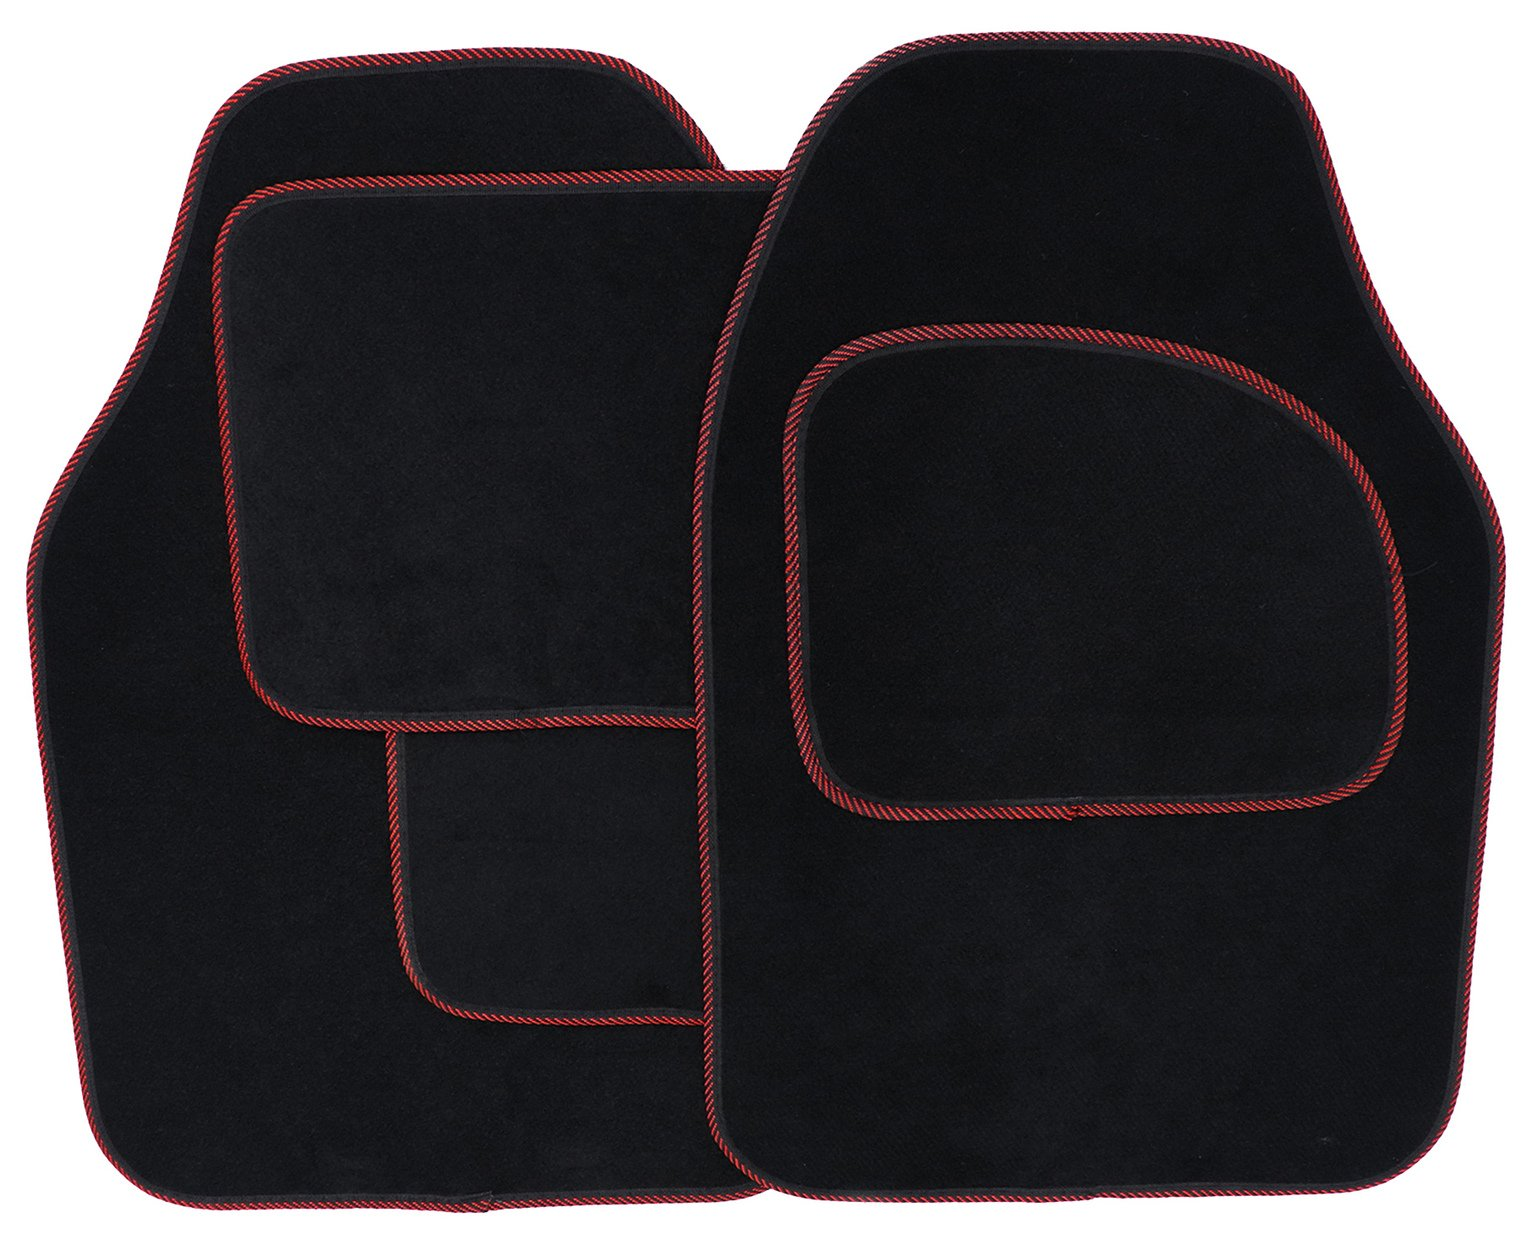 Image of Set of 4 Car Mats - Black with Red Trim